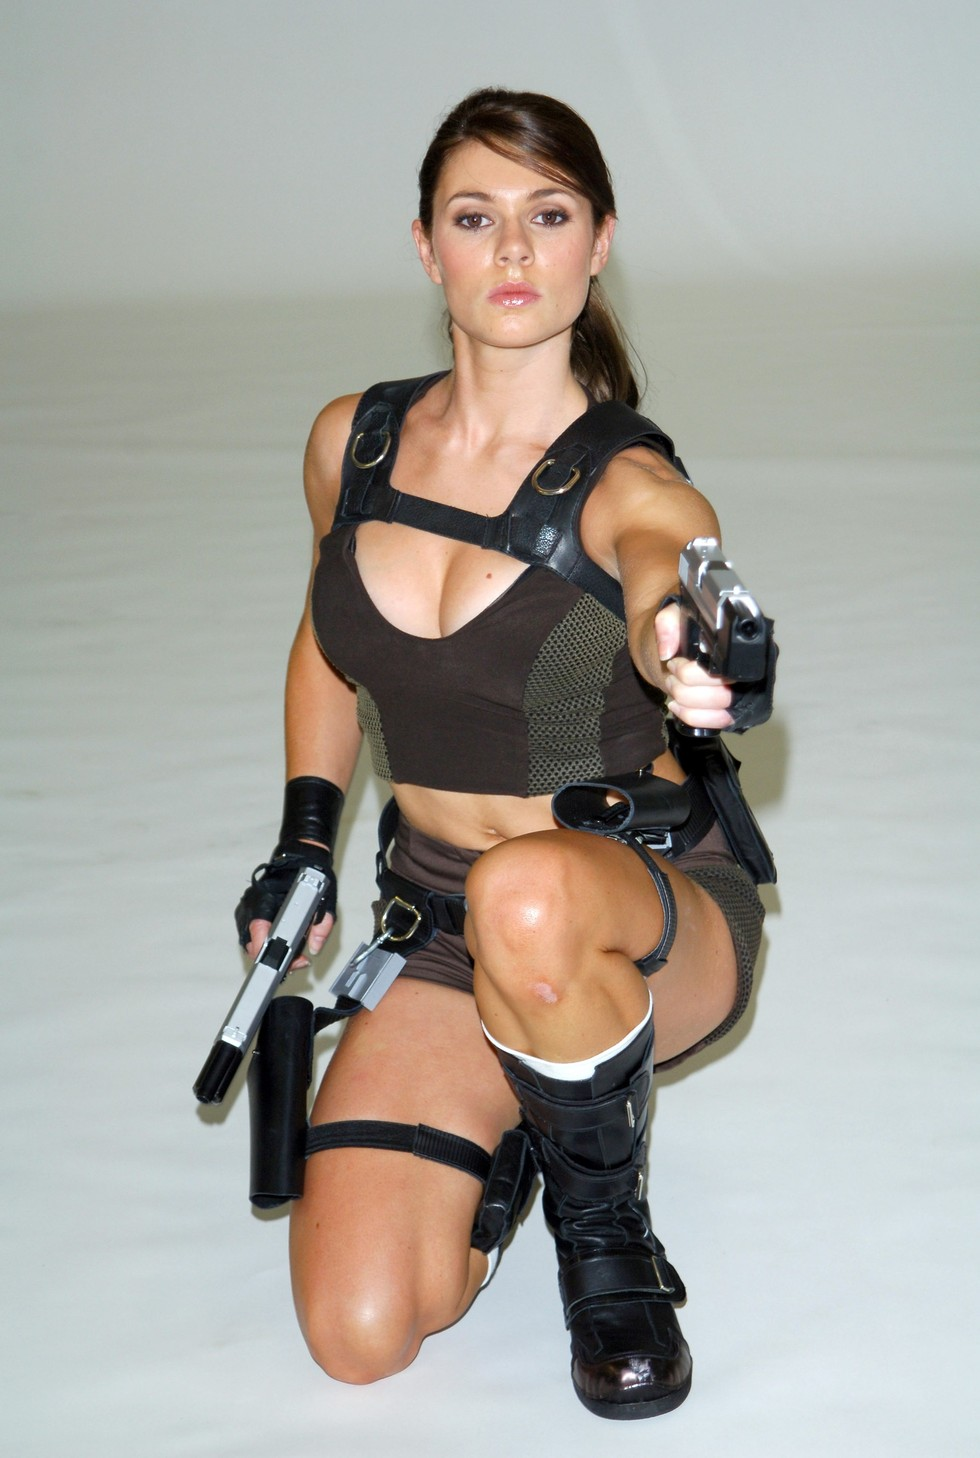 Lara croft nu fake sexual vids